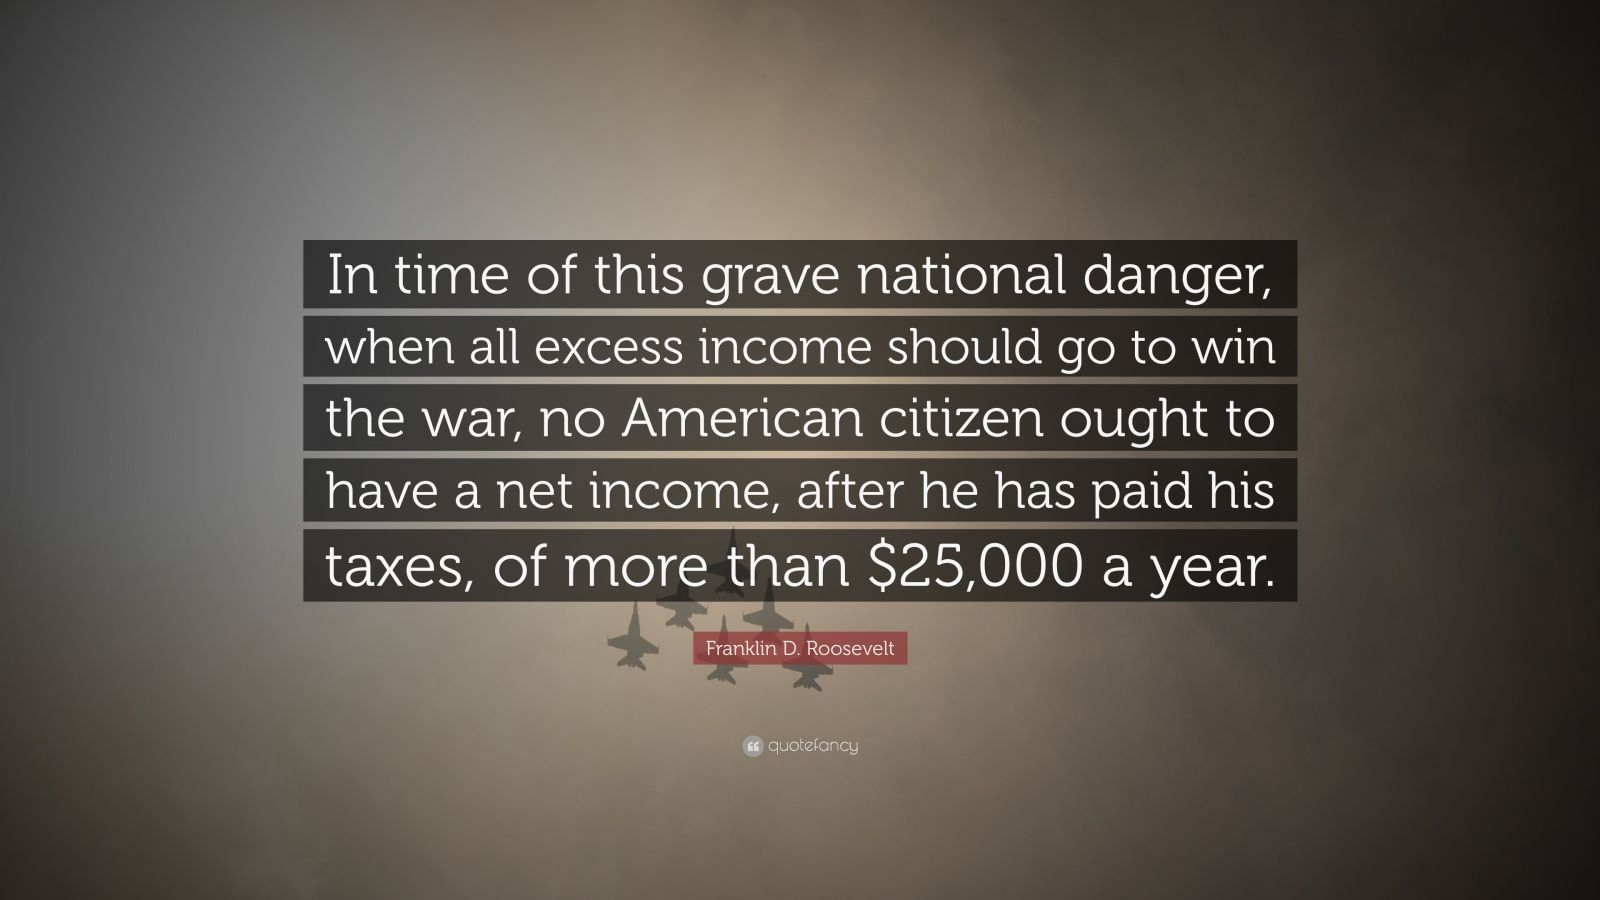 "Franklin D. Roosevelt Quote: ""In time of this grave national danger, when all excess income should go to win the war, no American citizen ought to have a net income, after he has paid his taxes, of more than $25,000 a year."""